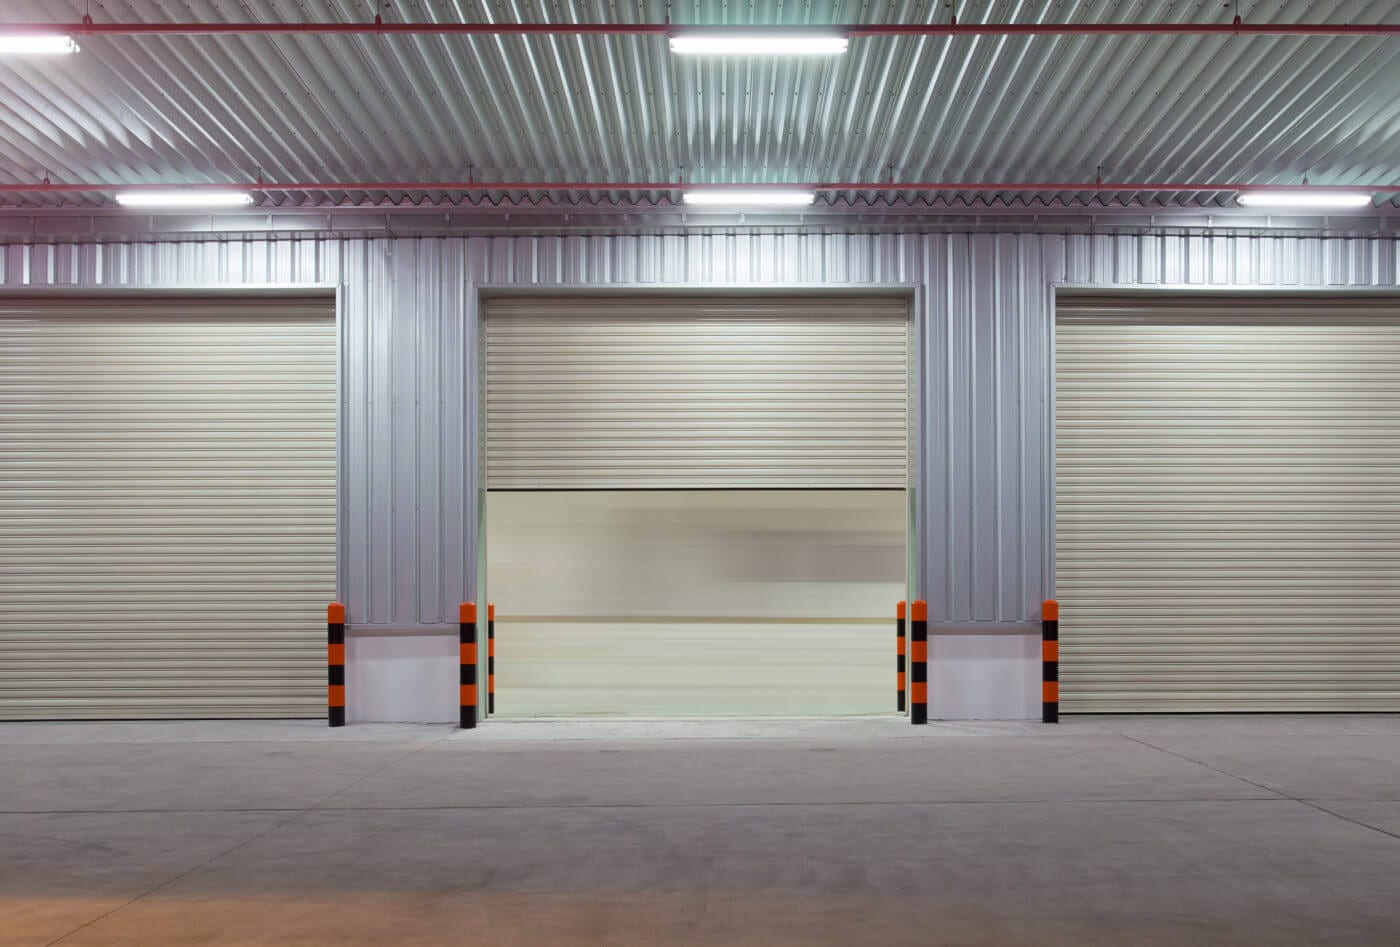 Warehousing and Distribution Centers